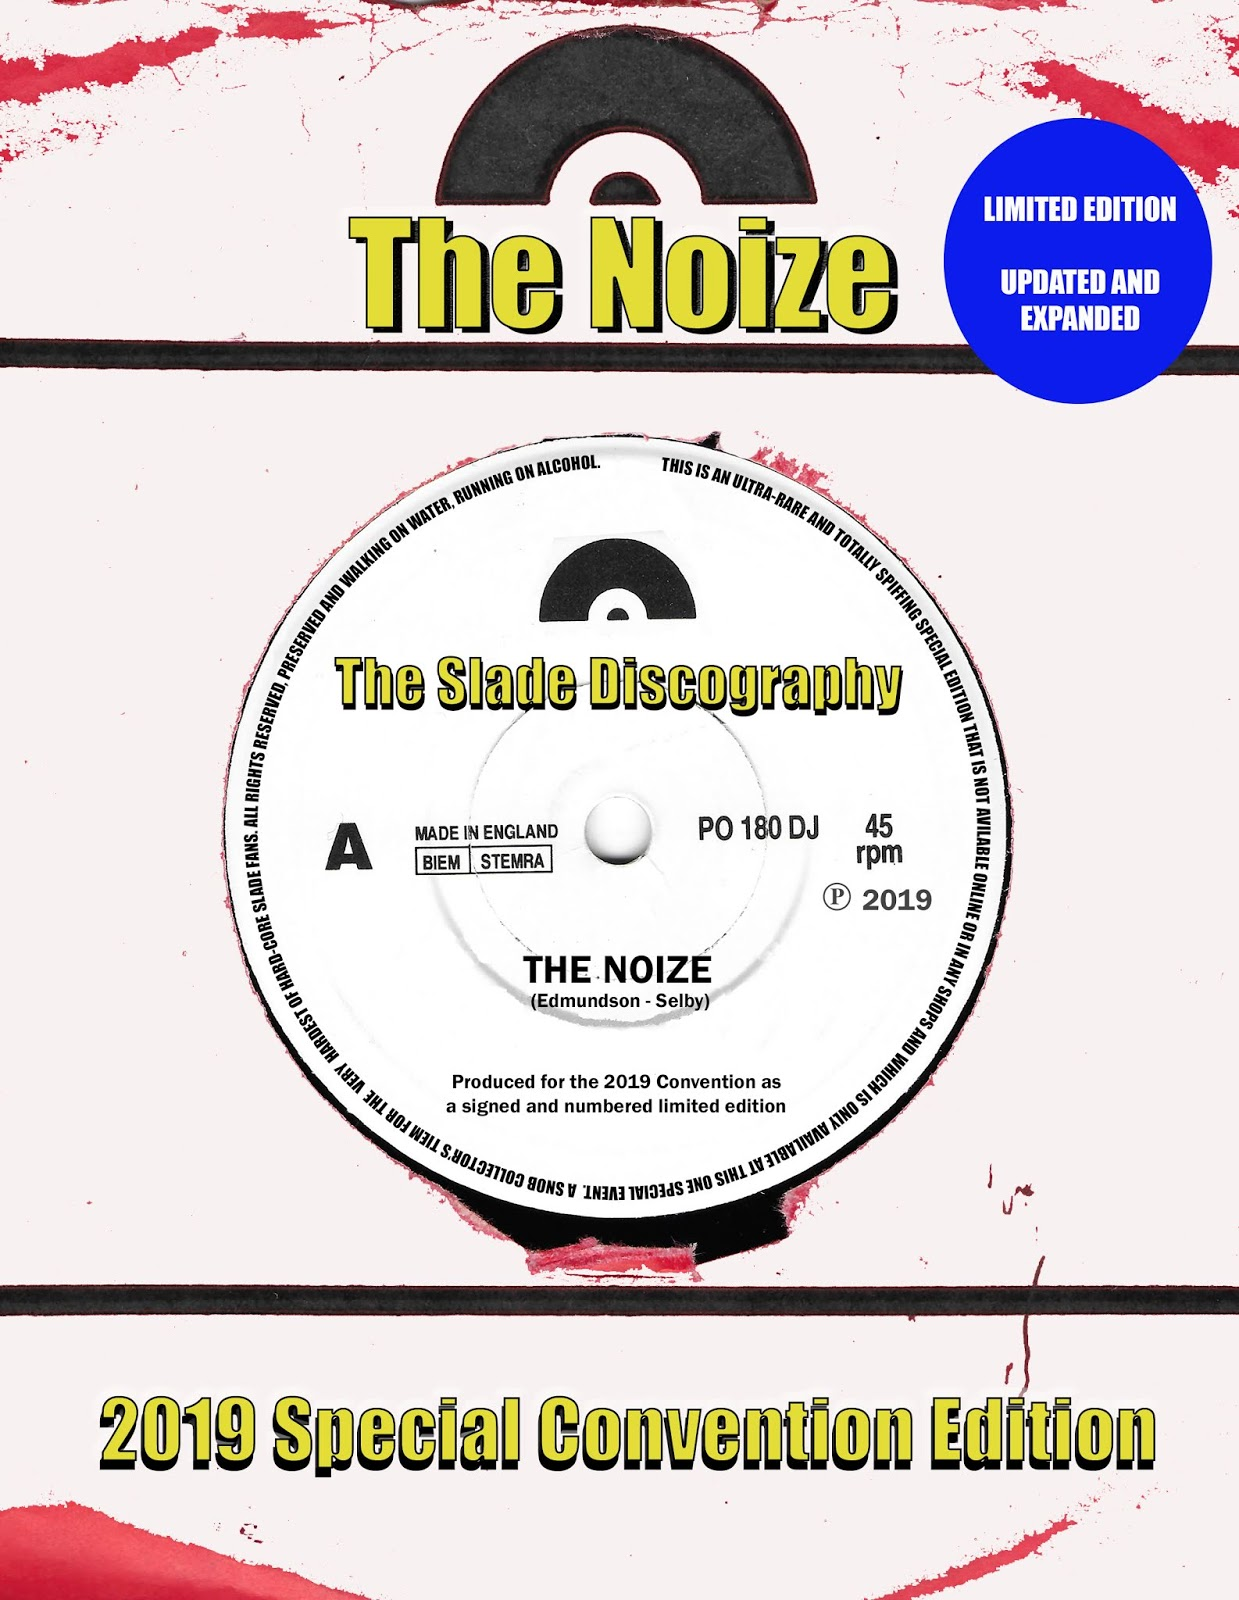 The Noize special convention edition